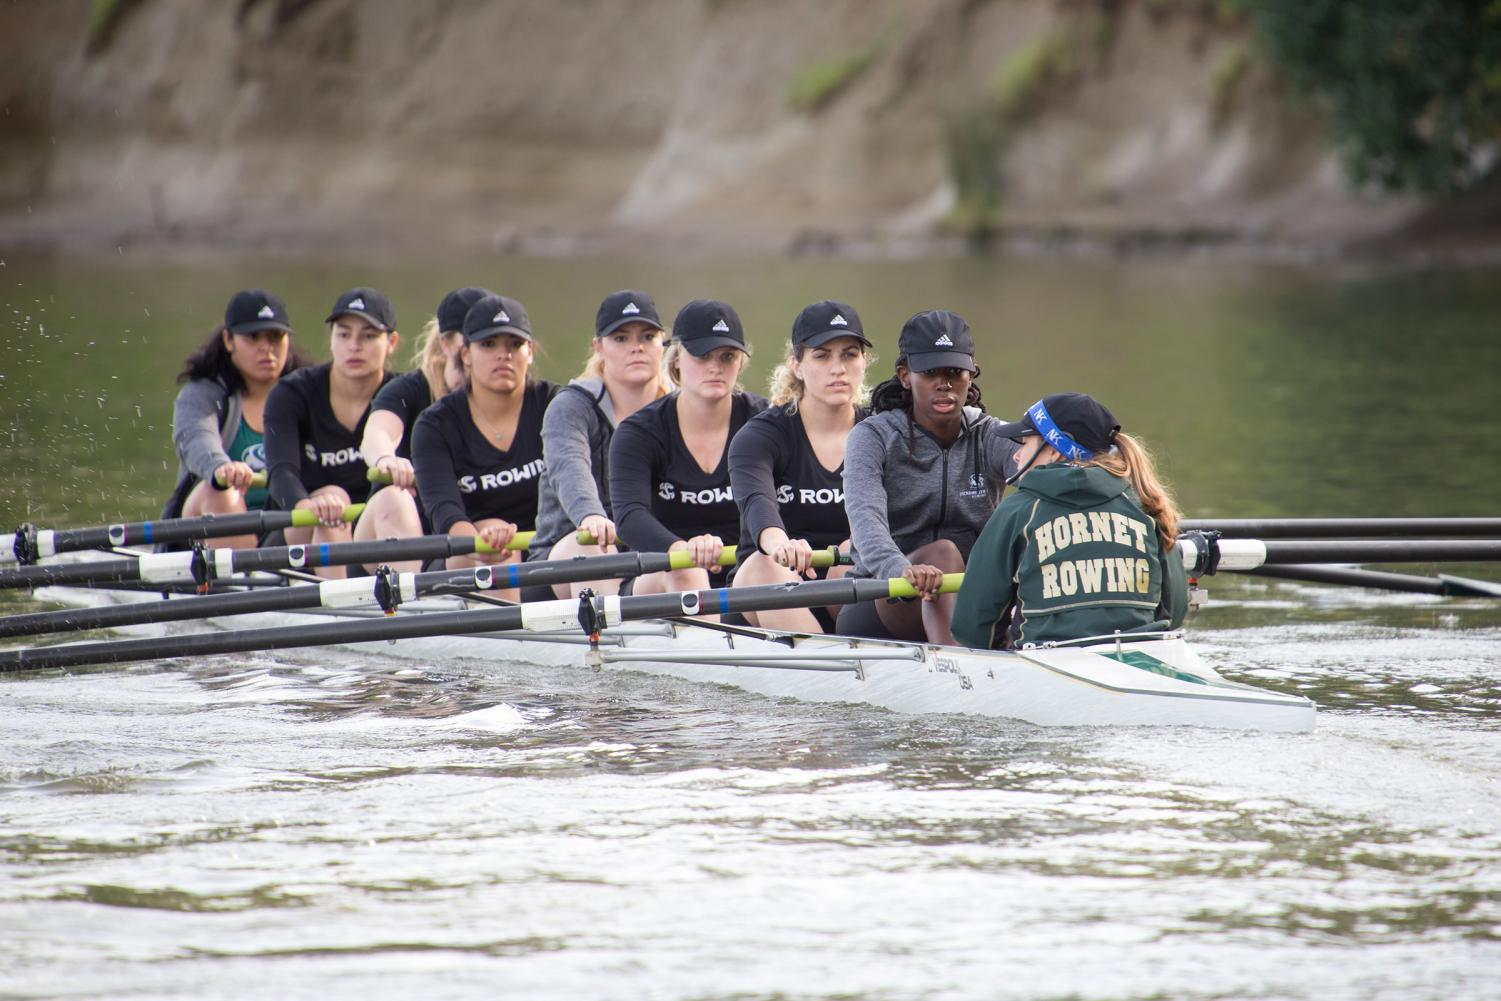 The Sacramento State rowing team competes in the Sacramento State Invitational at Lake Natoma on March 12, 2016. The Hornets will open the 2018 season on Saturday in the Sacramento State Invitational at Lake Natoma.